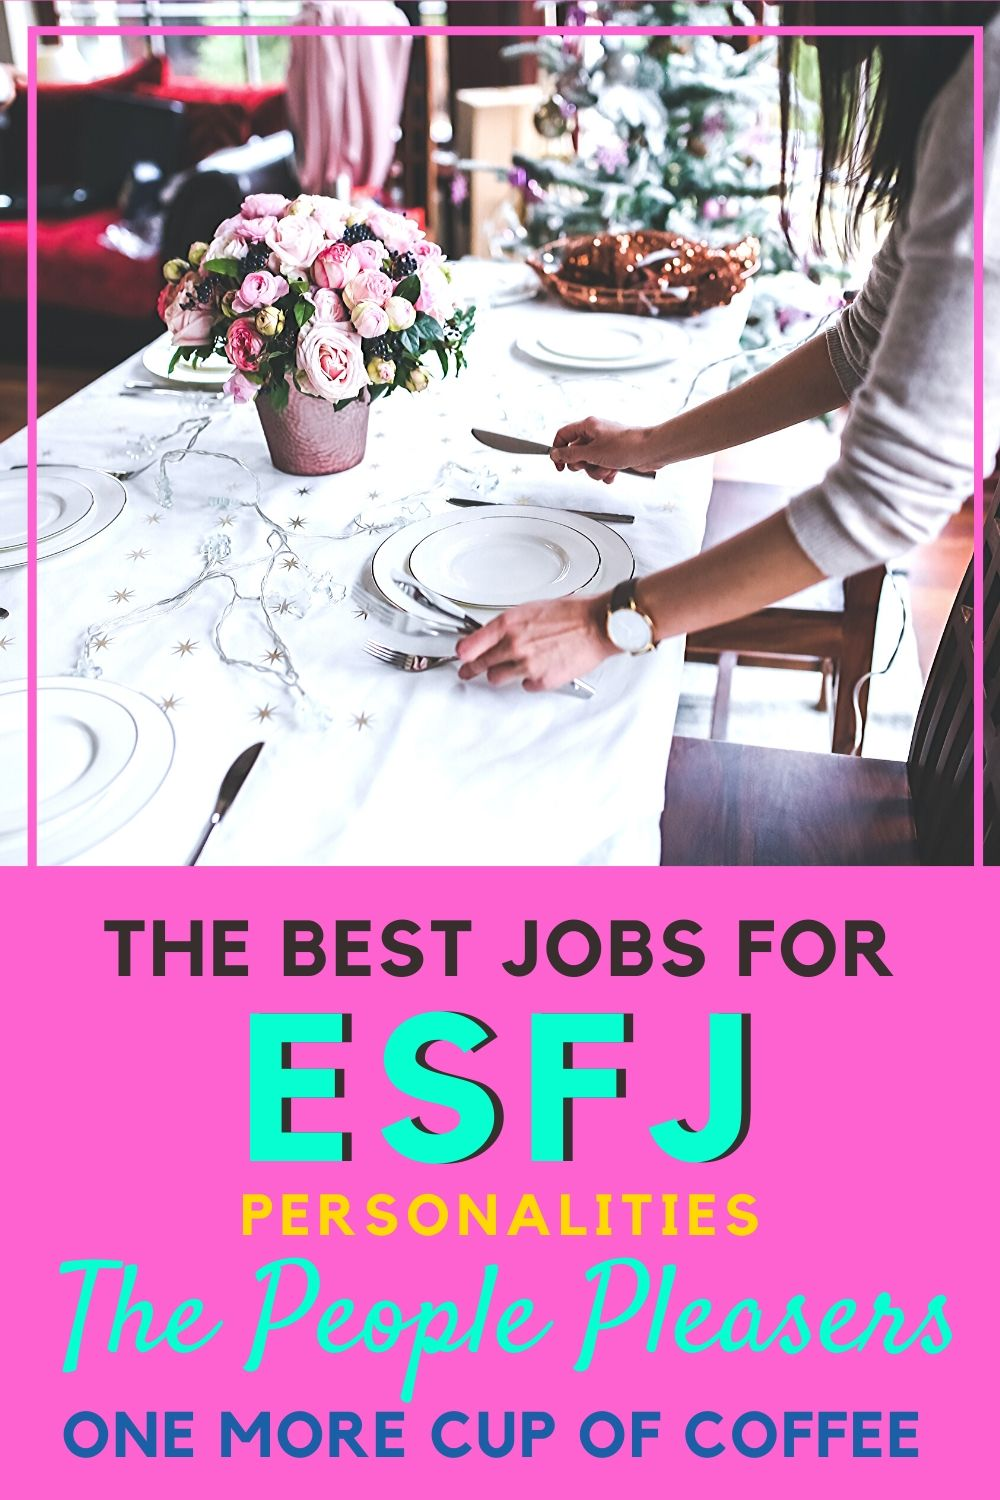 Caterer setting up a beautiful place setting representing jobs for ESFJ personality types!